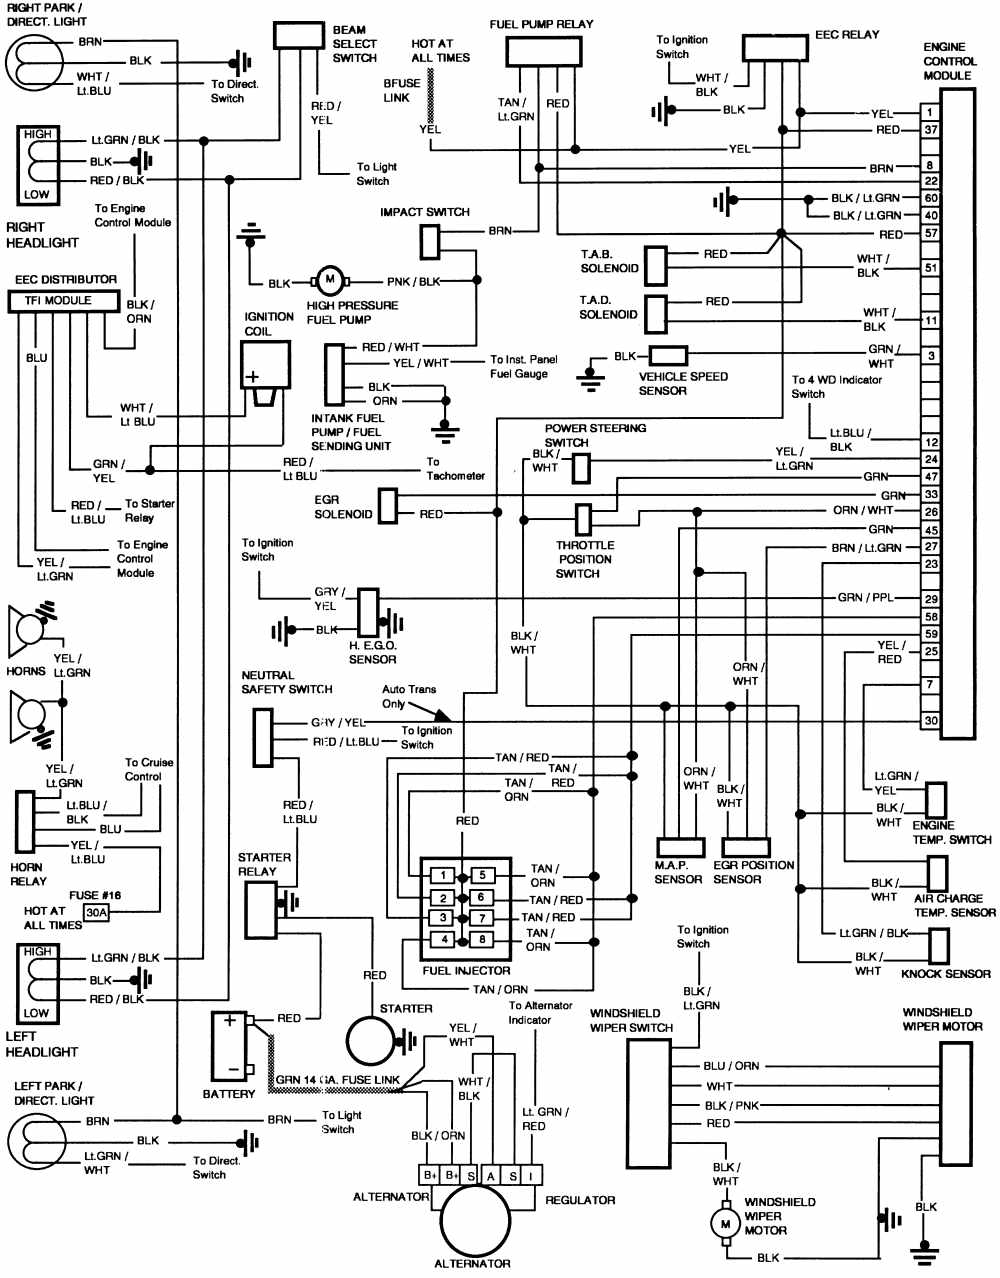 ford ignition system wiring diagram 2006 pdf with Ford F 250 1986 Engine Control Module on 1997 Chevrolet S10 Sonoma Wiring Diagram And Electrical System Schematics besides 6gjwb Ford F150 Pickup Heritage 2004 F150 4 6l Engine Turns furthermore ST1300 c likewise Vw Golf 5 Wiring Diagram likewise 53set Ford 150 Download Pdf 1986 150 Wiring.